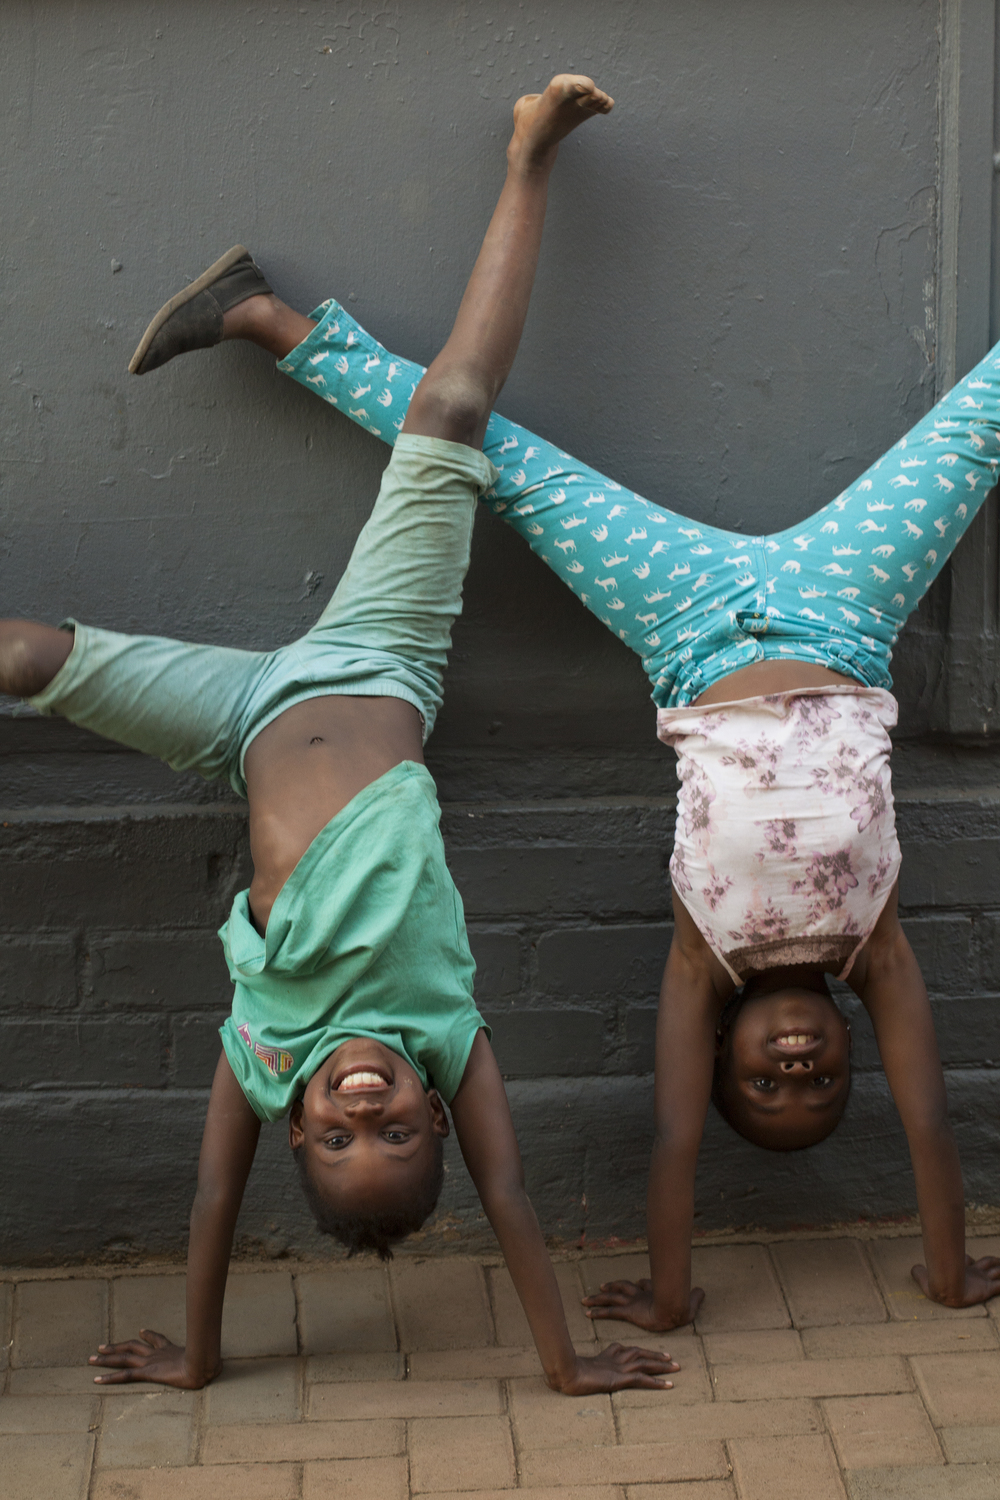 Girls at the Kliptown Youth Program show off their handstands for me when I visited Soweto, South Africa, to teach a photography workshop in 2014 with the Kliptown Photography Project. To learn more about that project, go to:  http://www.kliptownphotography.com